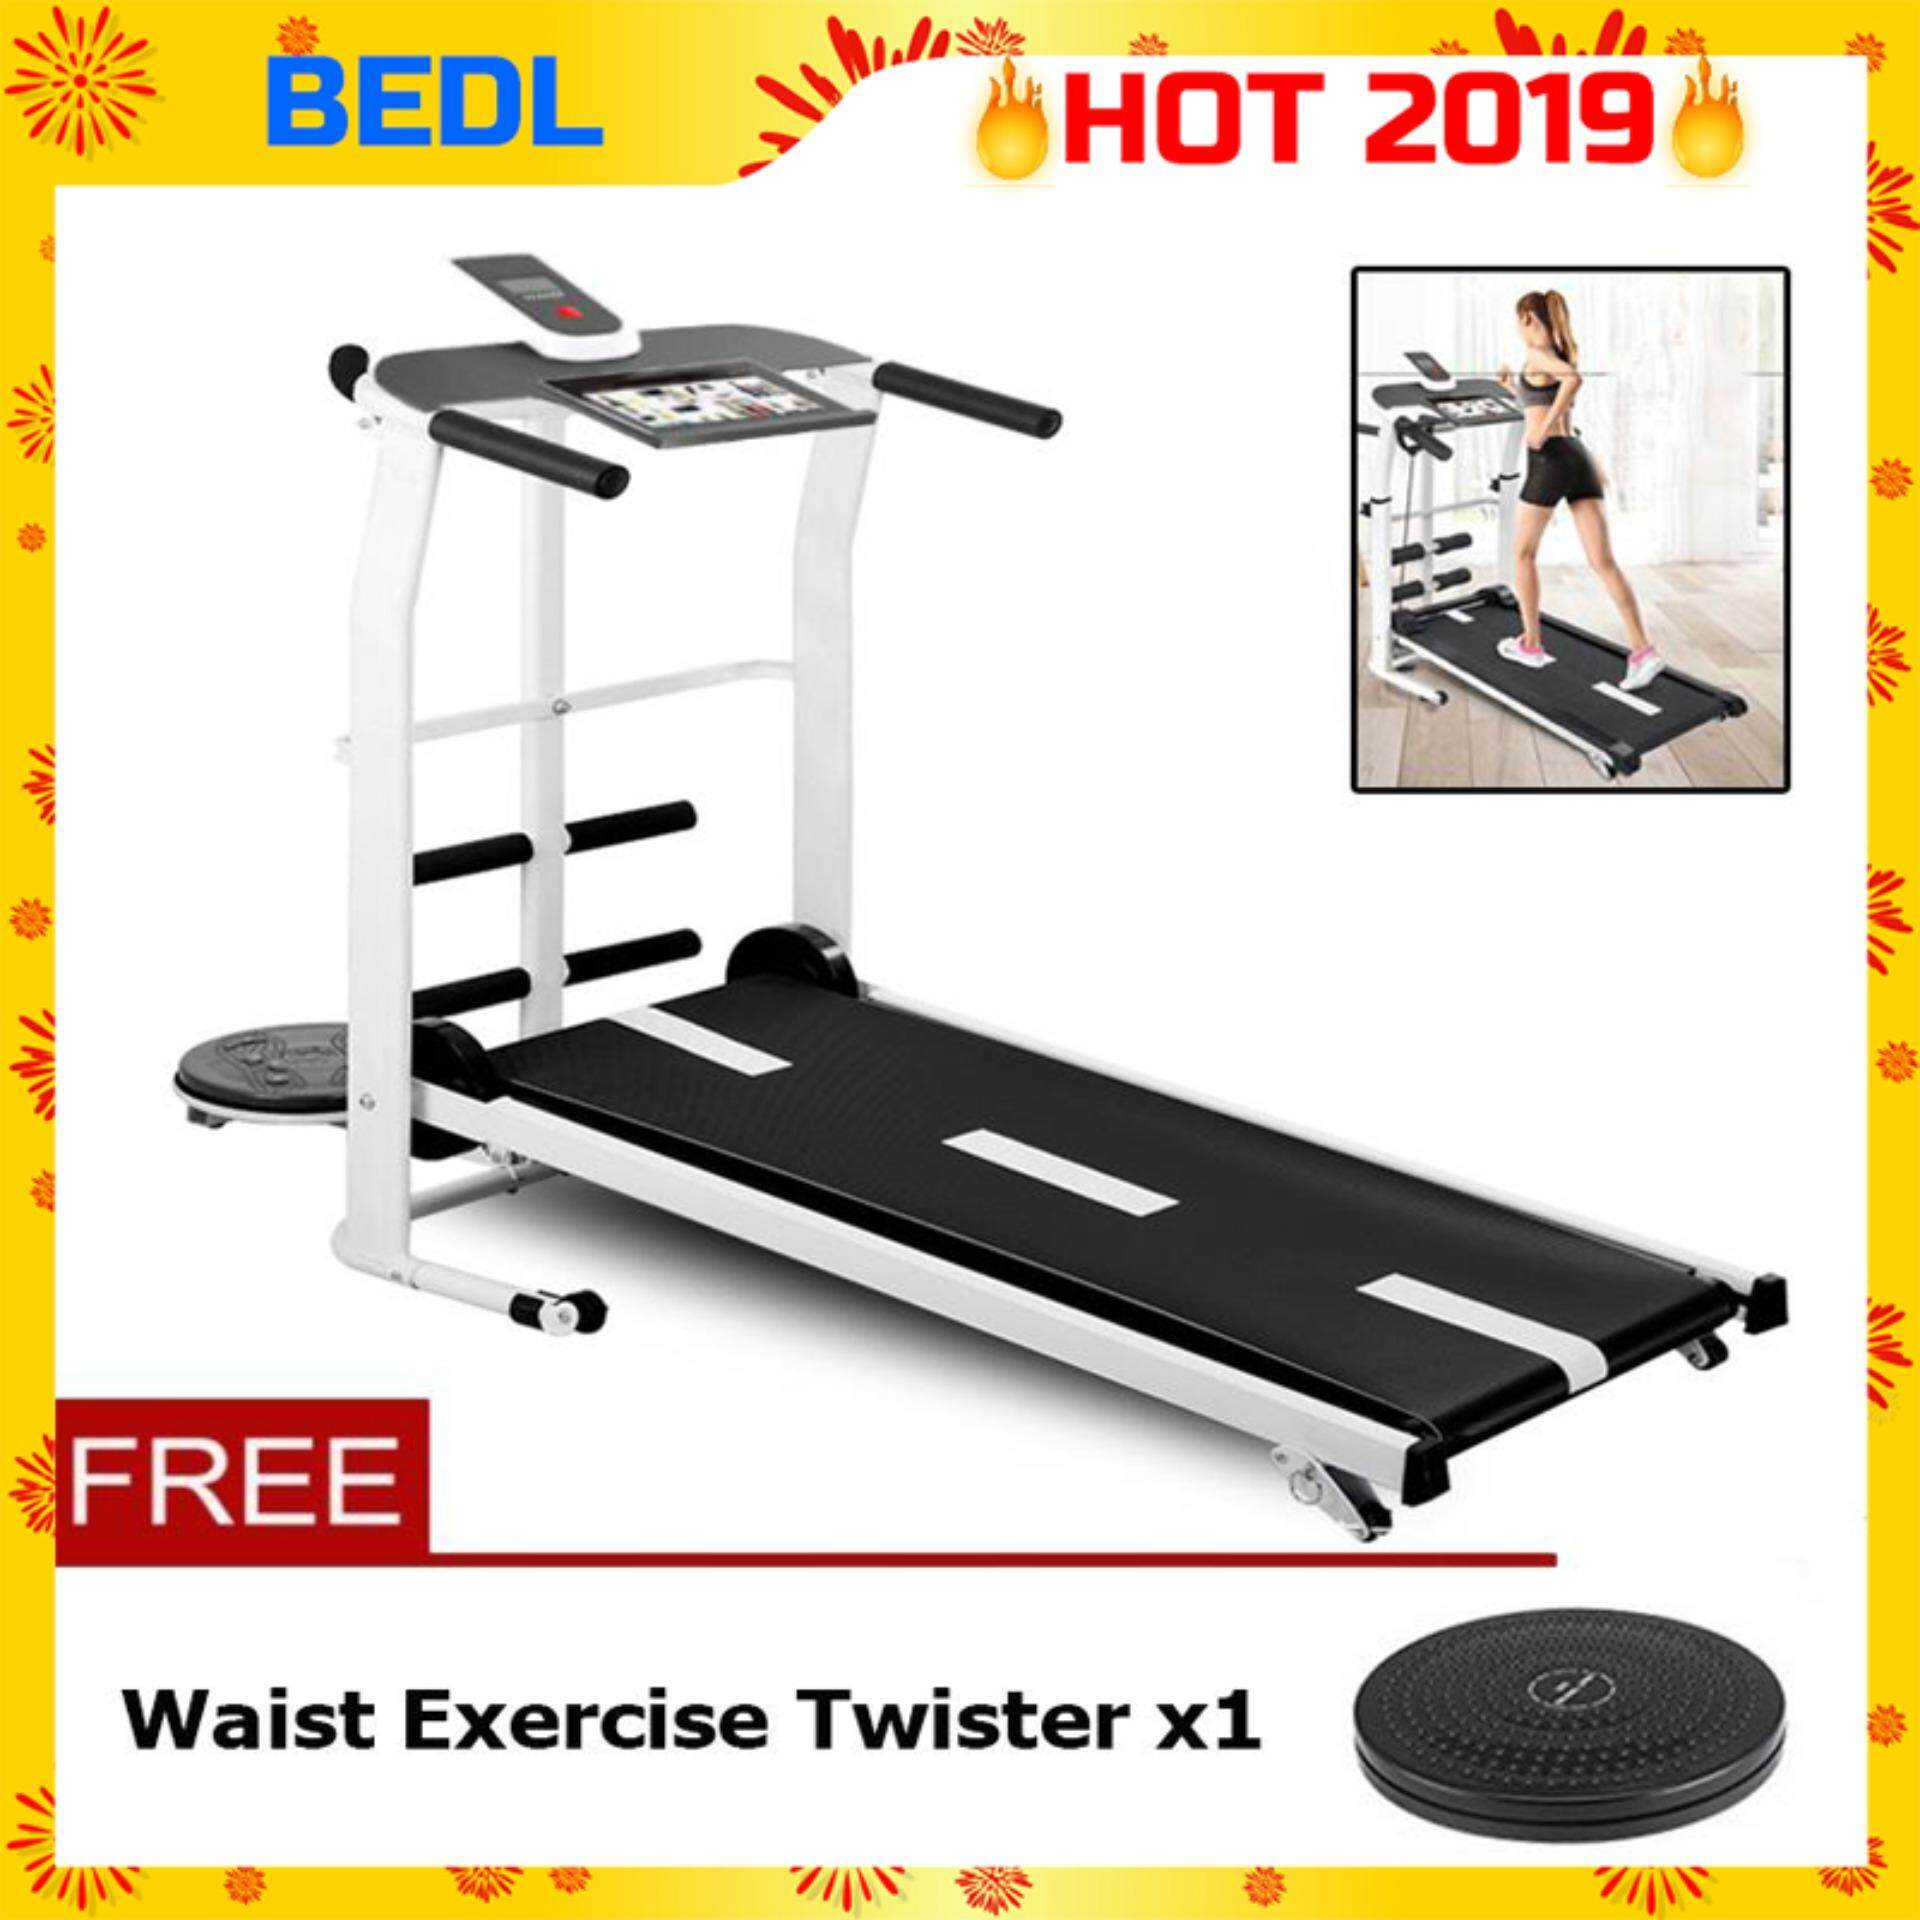 Bedl (bd250/bd280) Multi-Function Home Exercise Fitness Gym Mini Foldable Running Manual Treadmill -Free Waist Exercise Twister By Biosys.